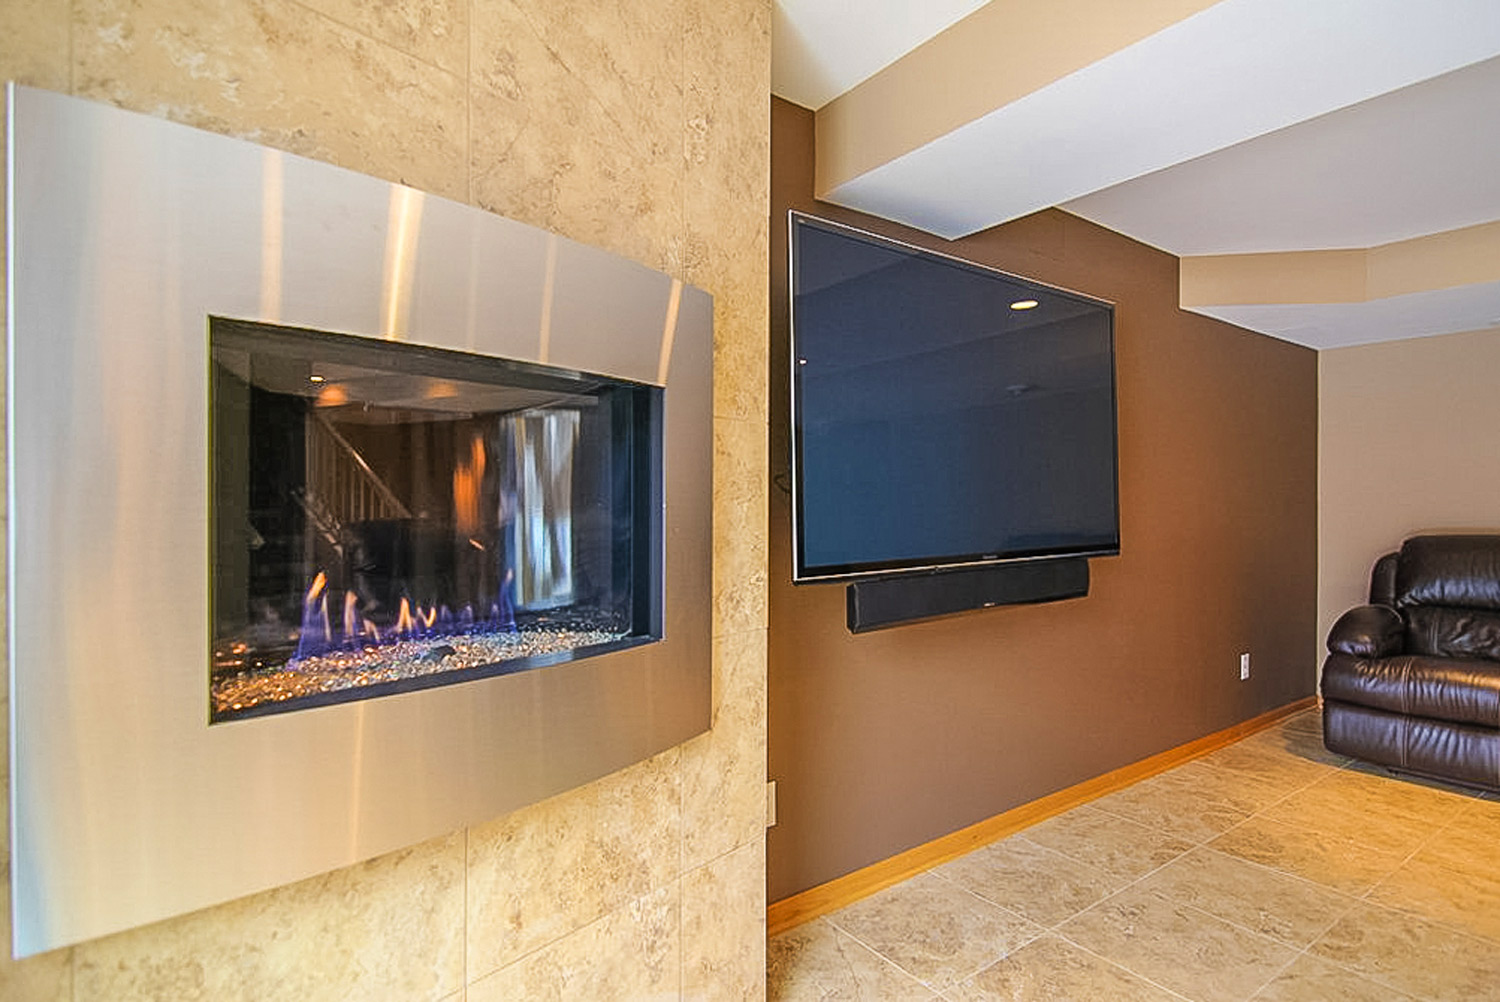 Modern Stainless Steel Fireplace and Flat Screen TV